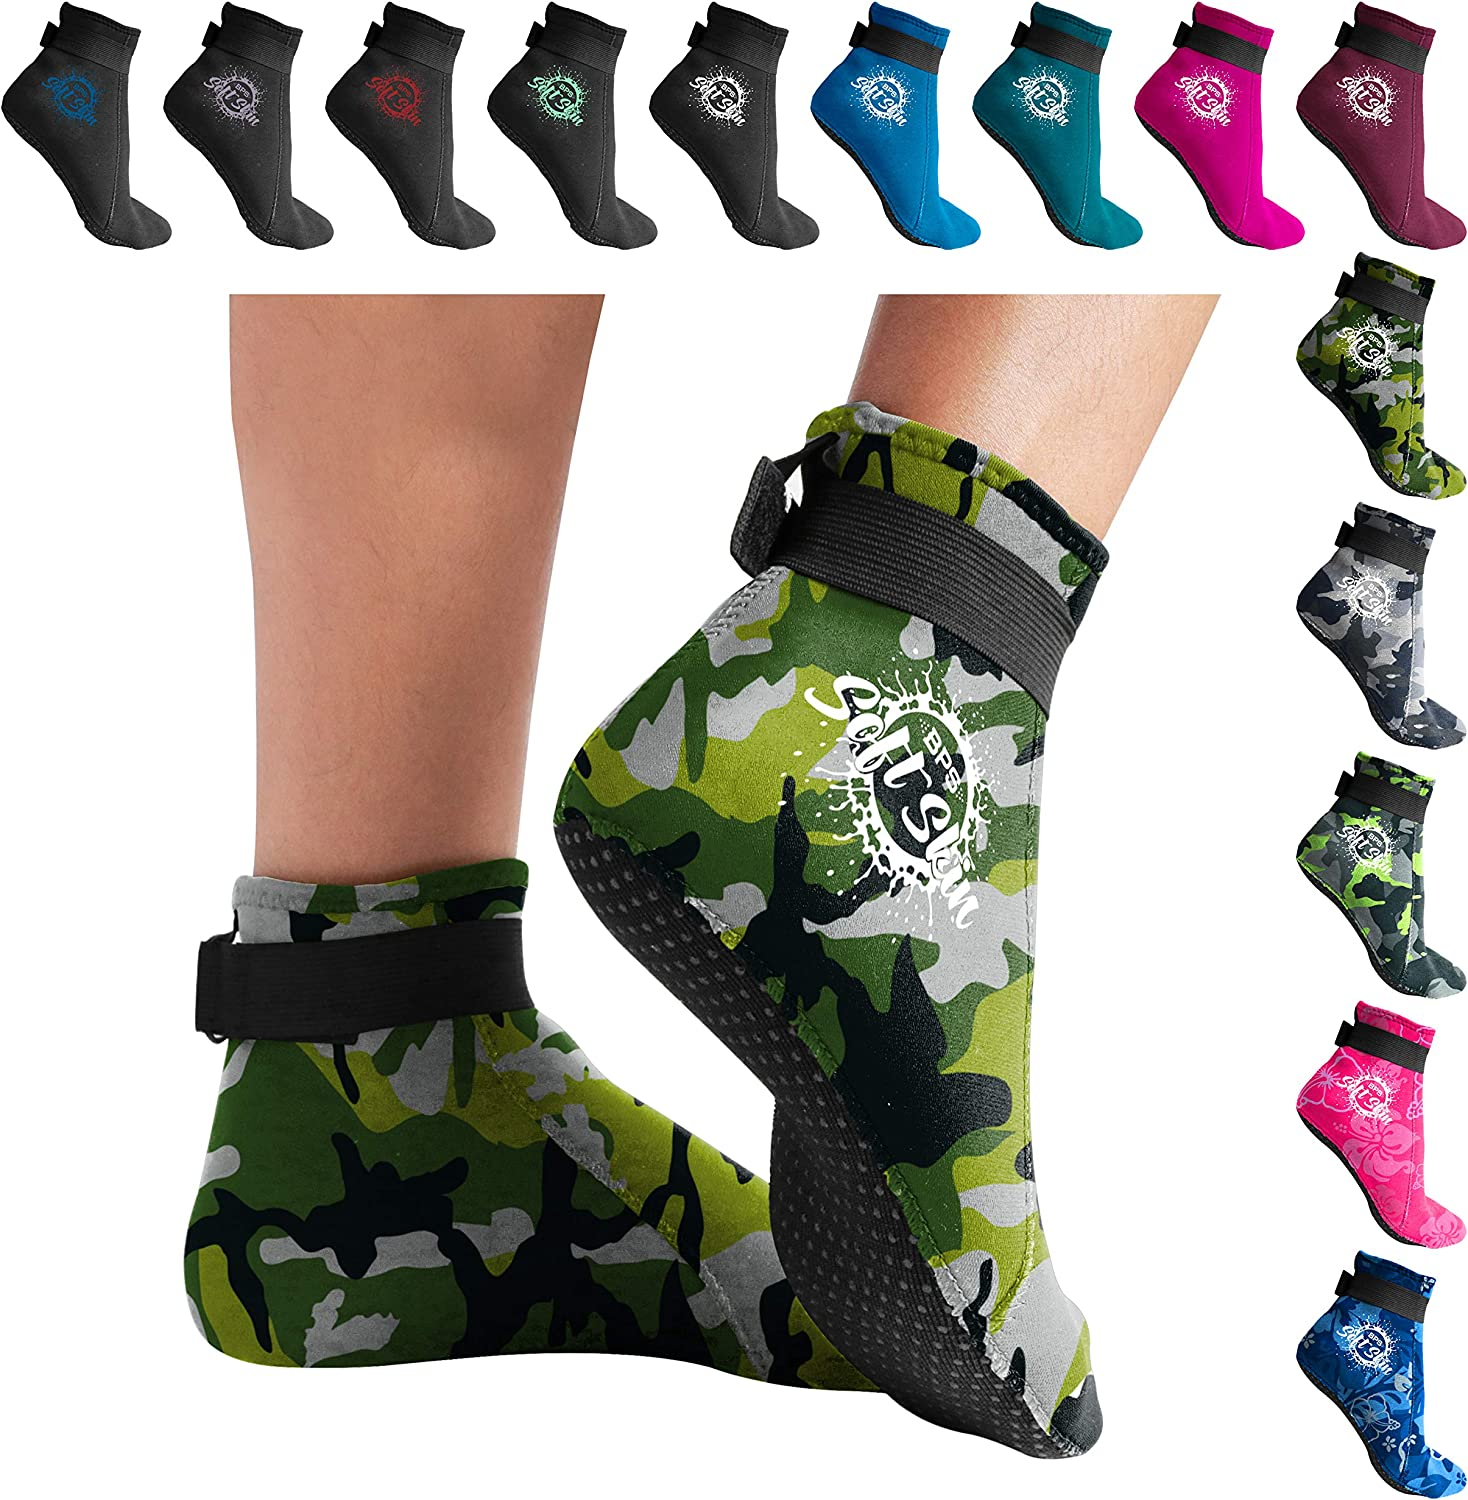 Snorkeling 3mm Neoprene Glued /& Blind-Stitched w//Fit Adjustment Straps BPS Storm Elite Sport Water Socks Water /& Sand Activities High Cut - More Coverage, Protection /& Warmth Tide-Pooling